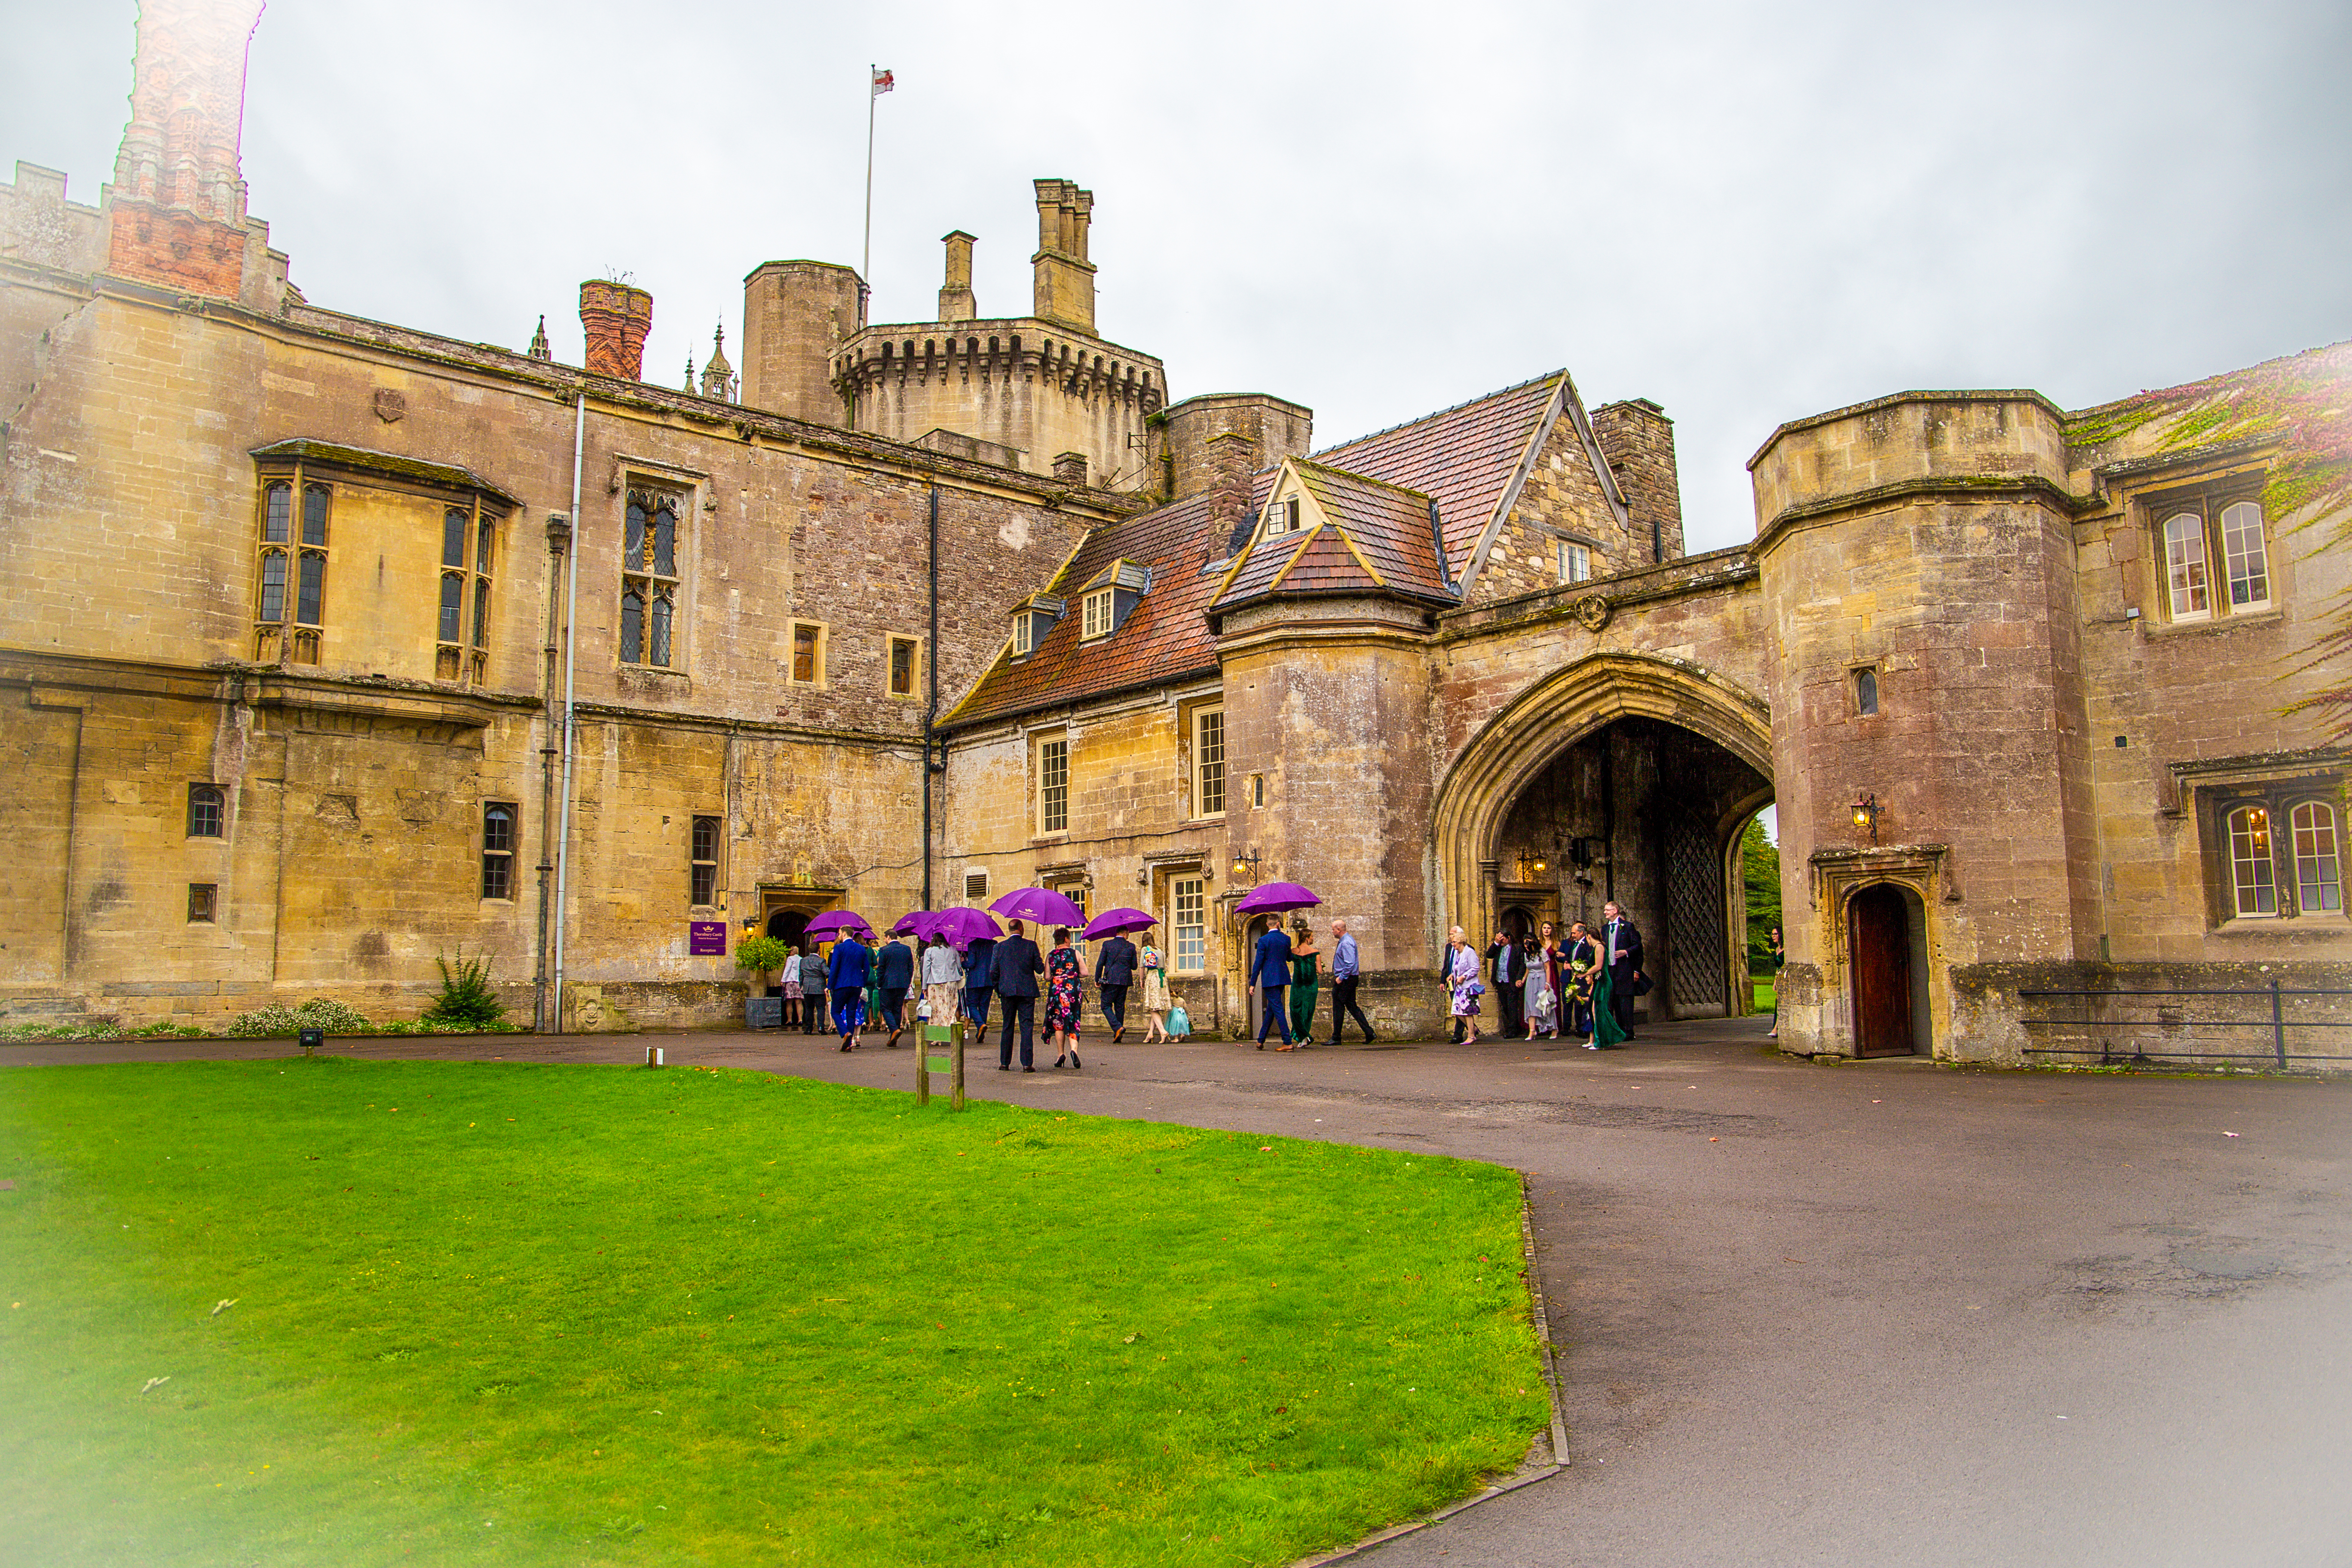 The Outside of Thornbury Castle, a yellow stone building with turrets and an archway, with a lawn in front. Wedding guests move towards the entrance carrying purple umberellas